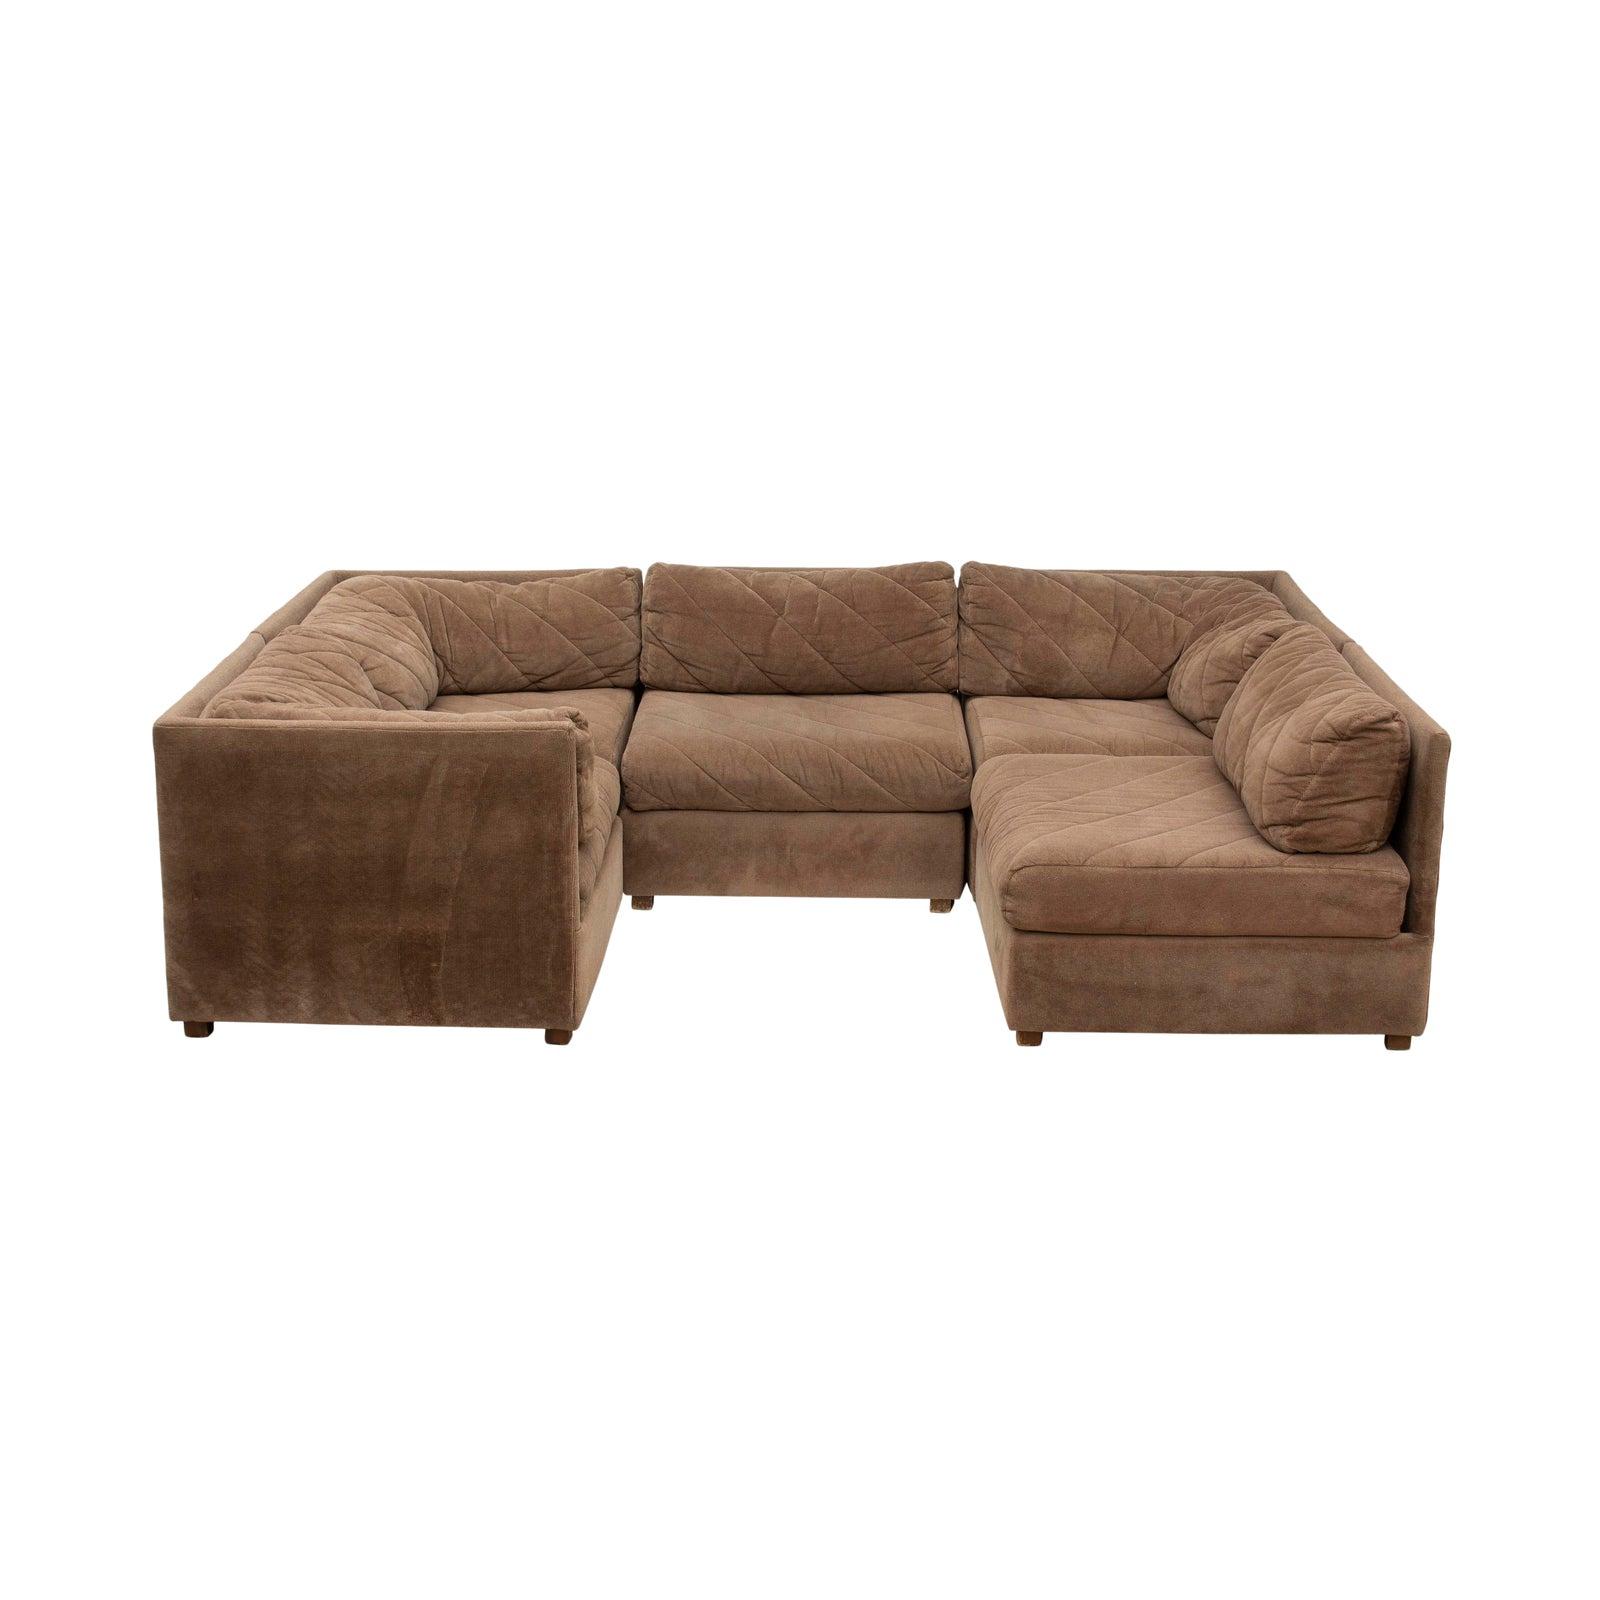 Swell Modular Sectional Sofa By Selig 5 Pieces Gmtry Best Dining Table And Chair Ideas Images Gmtryco